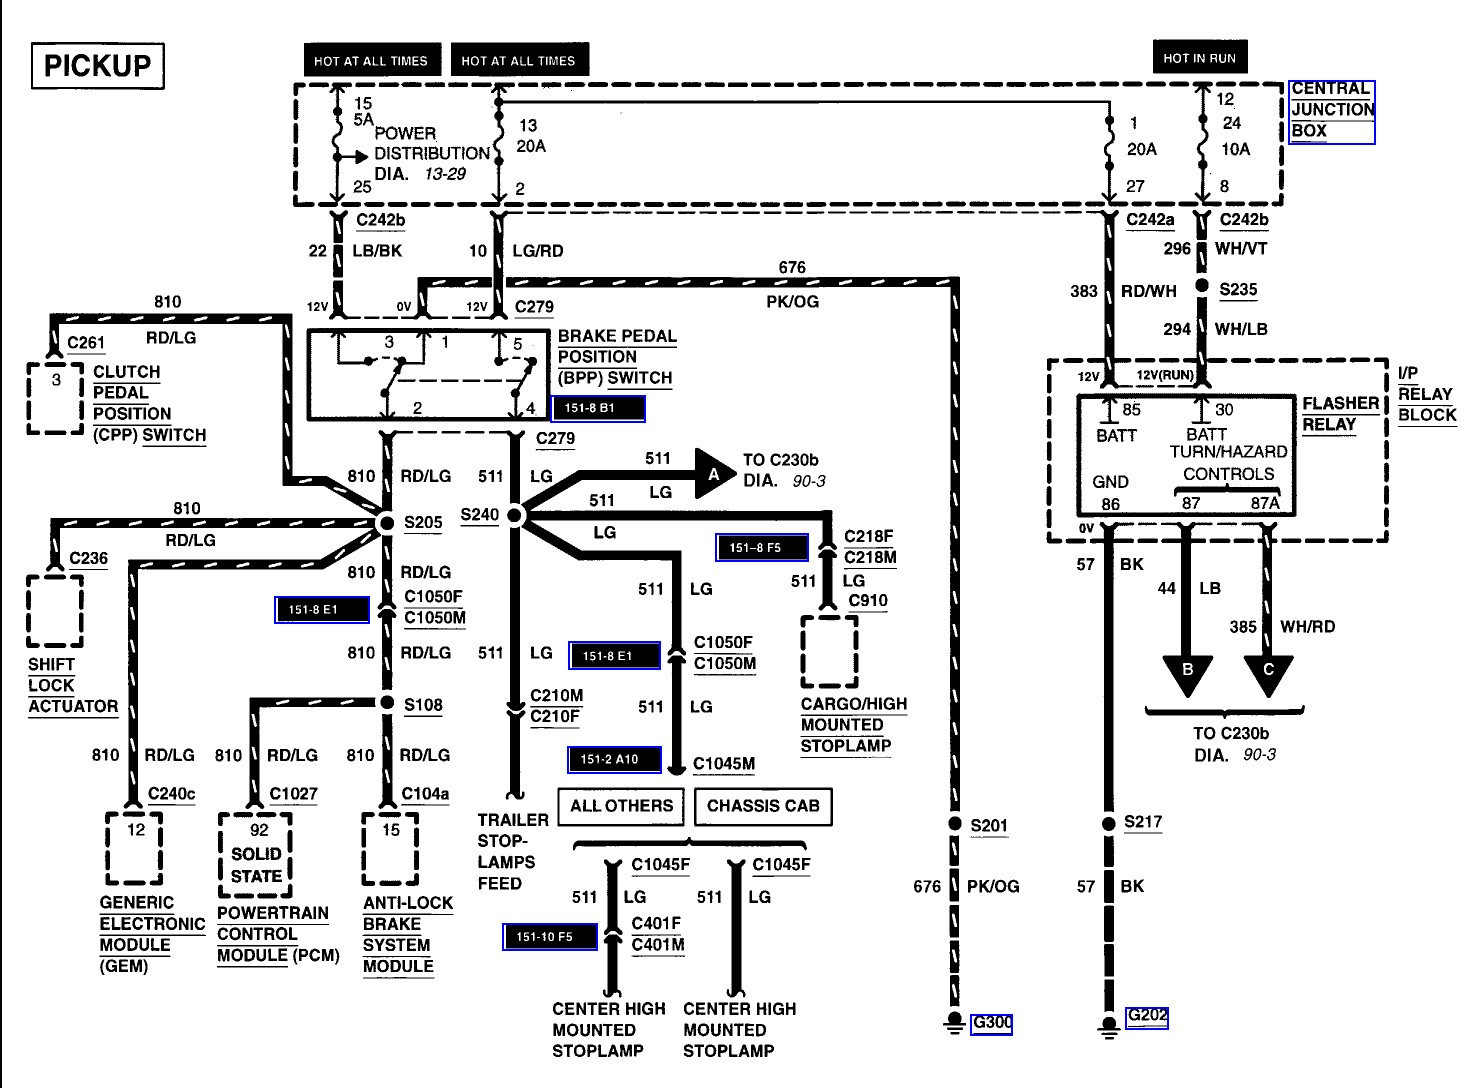 2001 F250 Wiring Diagram | Wiring Diagram Ford F Alternator Wiring Diagram on ford f250 horn wiring diagram, ford f250 reverse lights wiring diagram, ford f250 trailer wiring diagram,